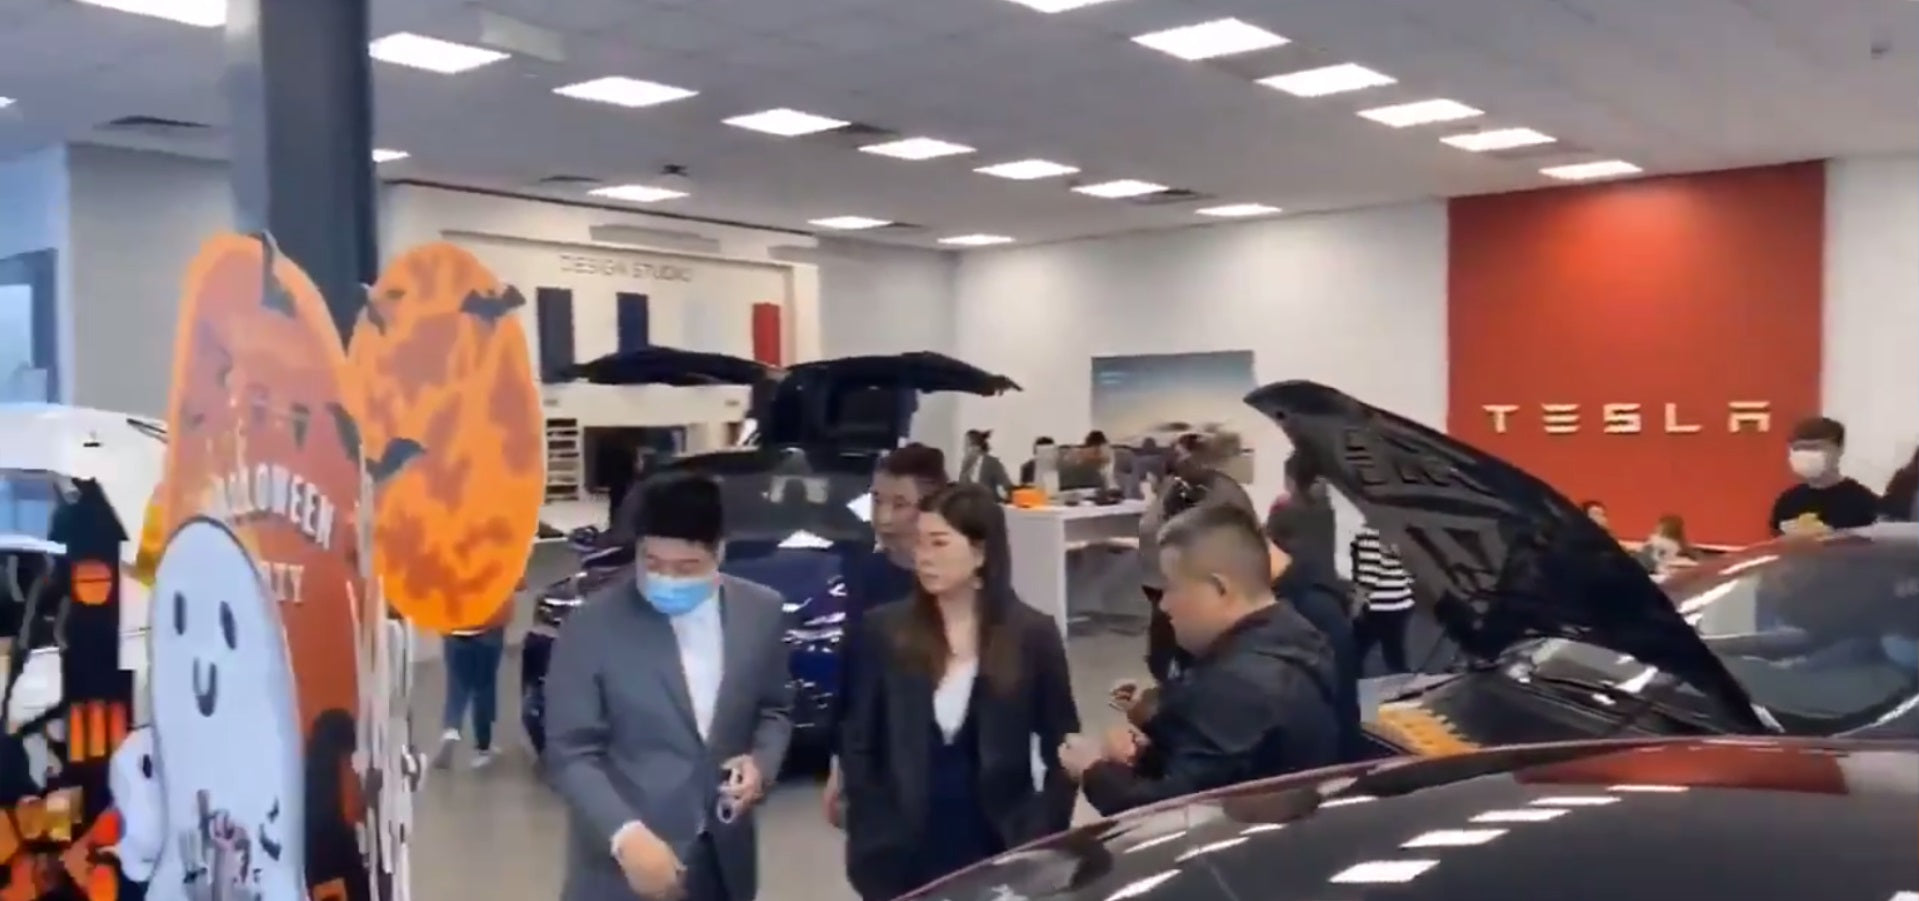 Tesla (TSLA) Demand in China Continues to Skyrocket as Stores Are Packed with Customers